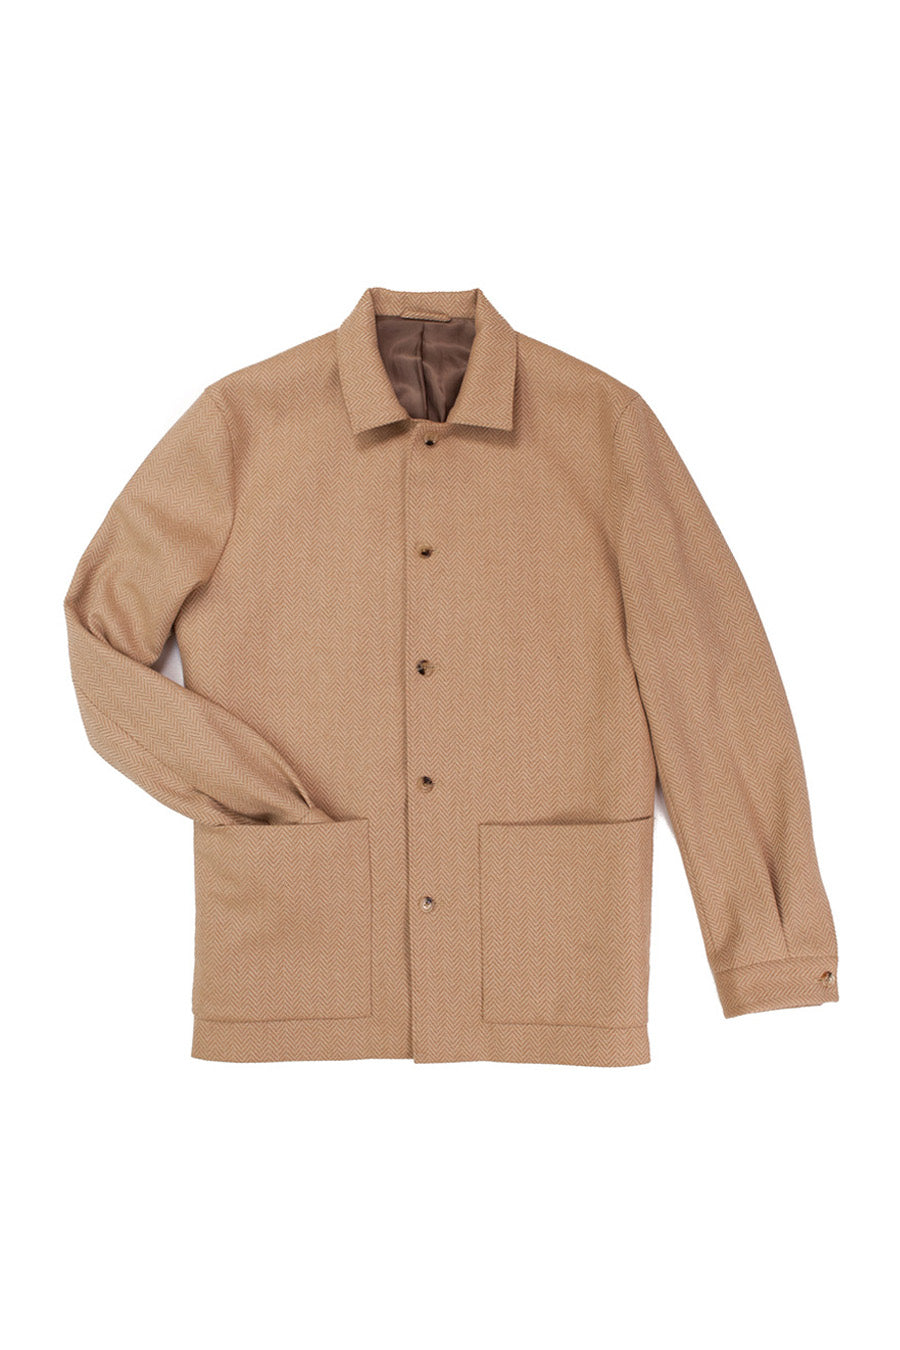 Herringbone Camelhair Lined Shirt Jacket